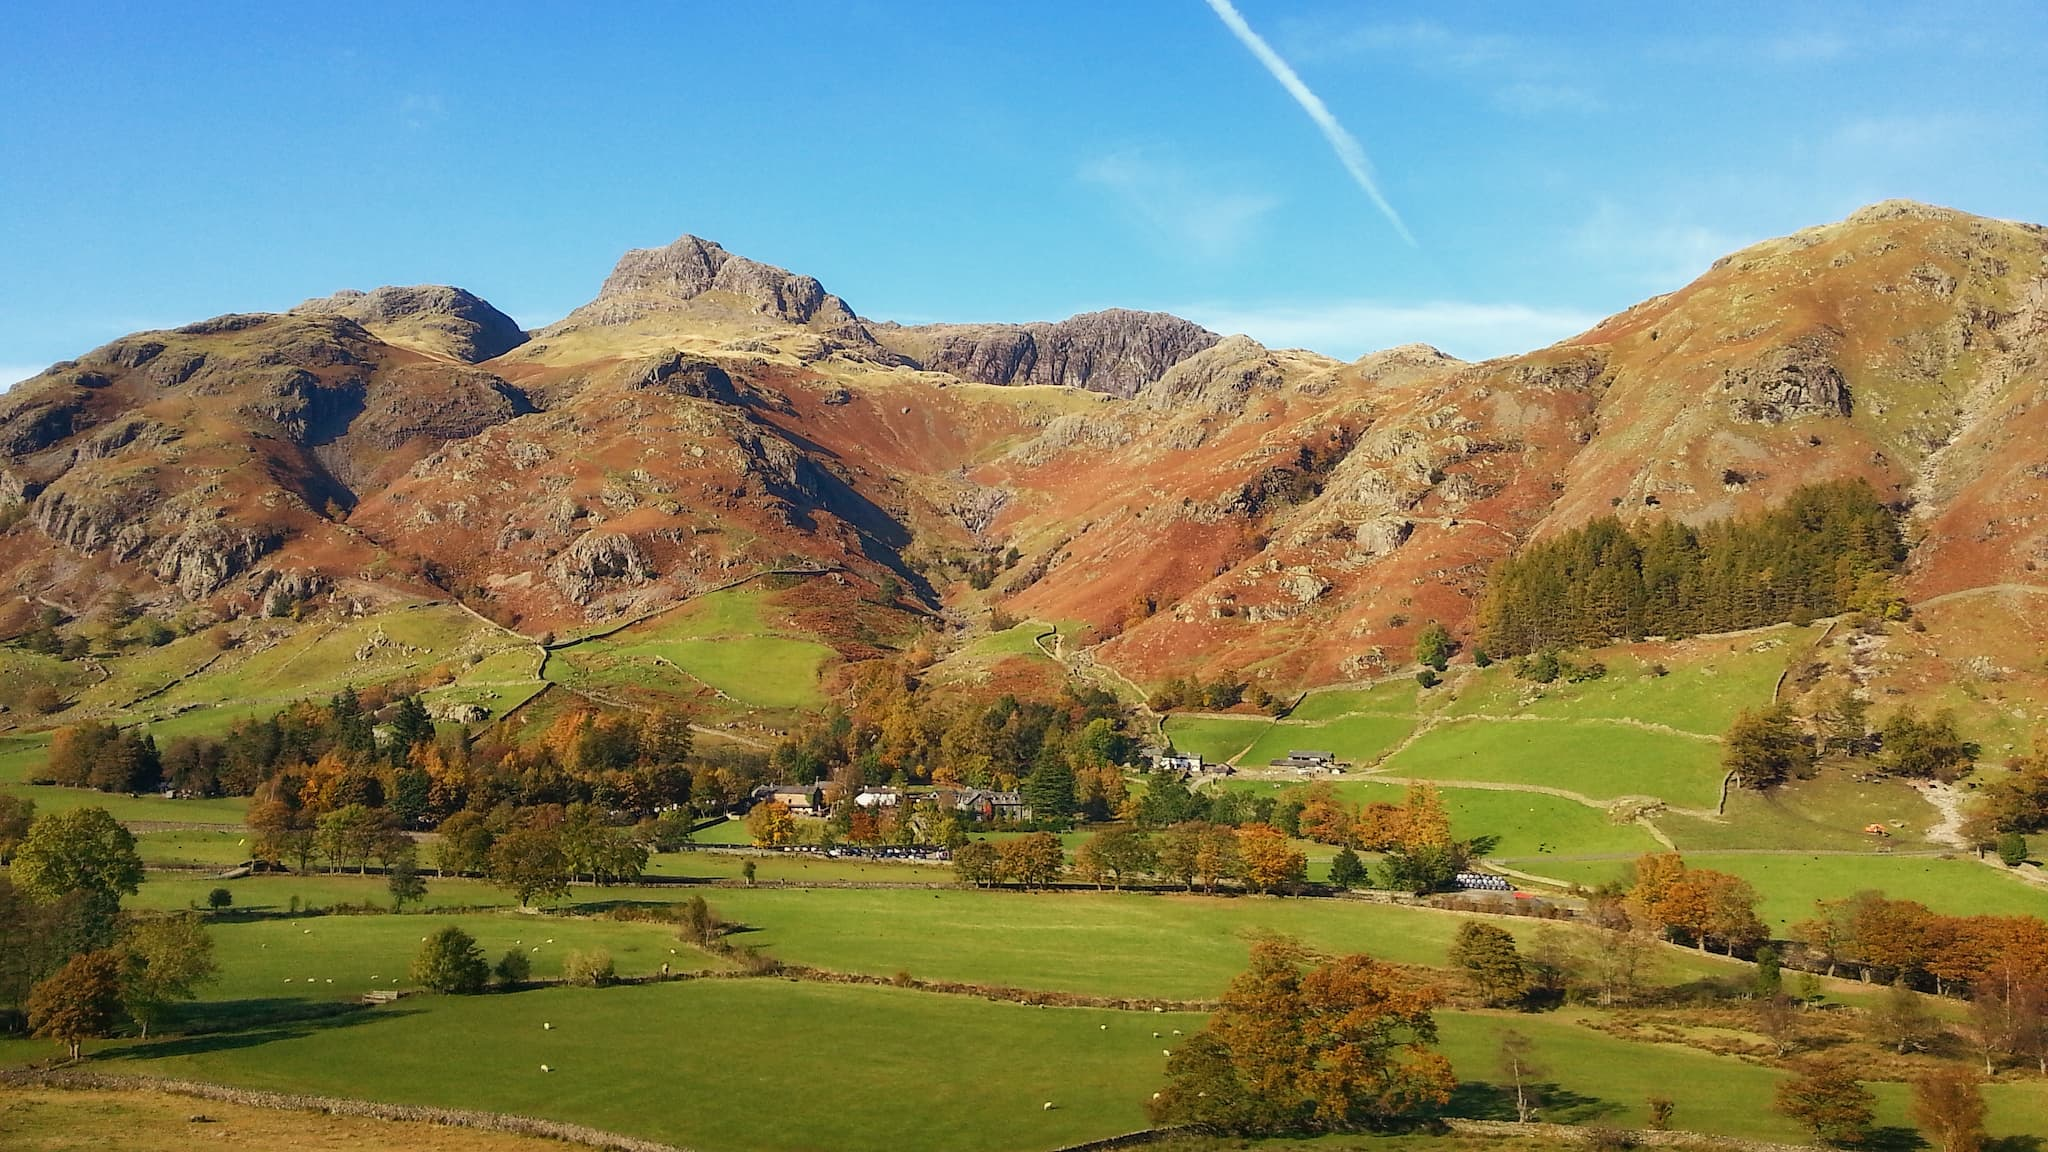 The Langdale Pikes in full autumn colours on a clear blue sky day